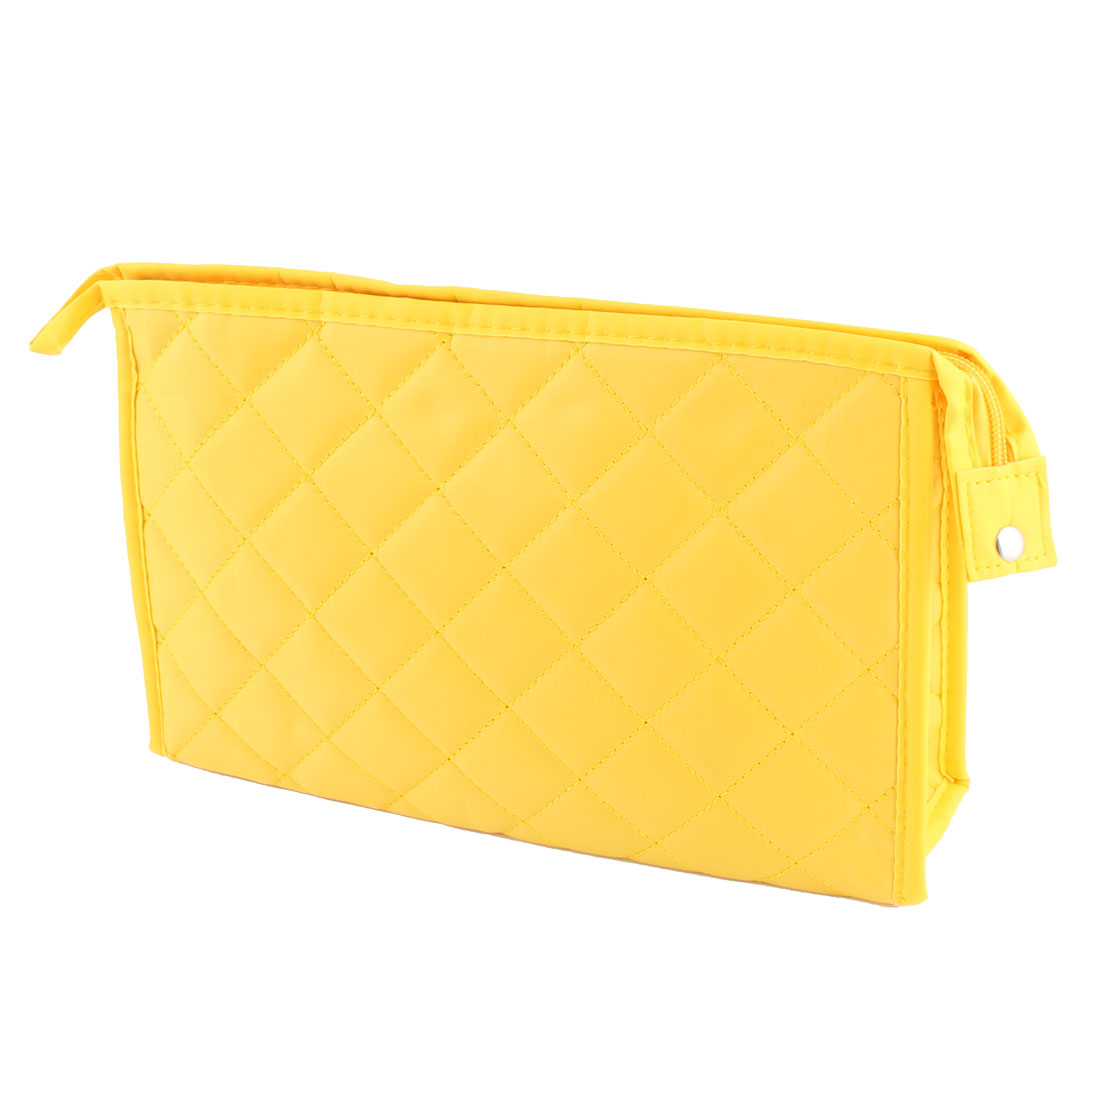 Lady Polyester Rhombus Pattern Zippered Design Toiletry Holder Cosmetic Bag Organizer Yellow